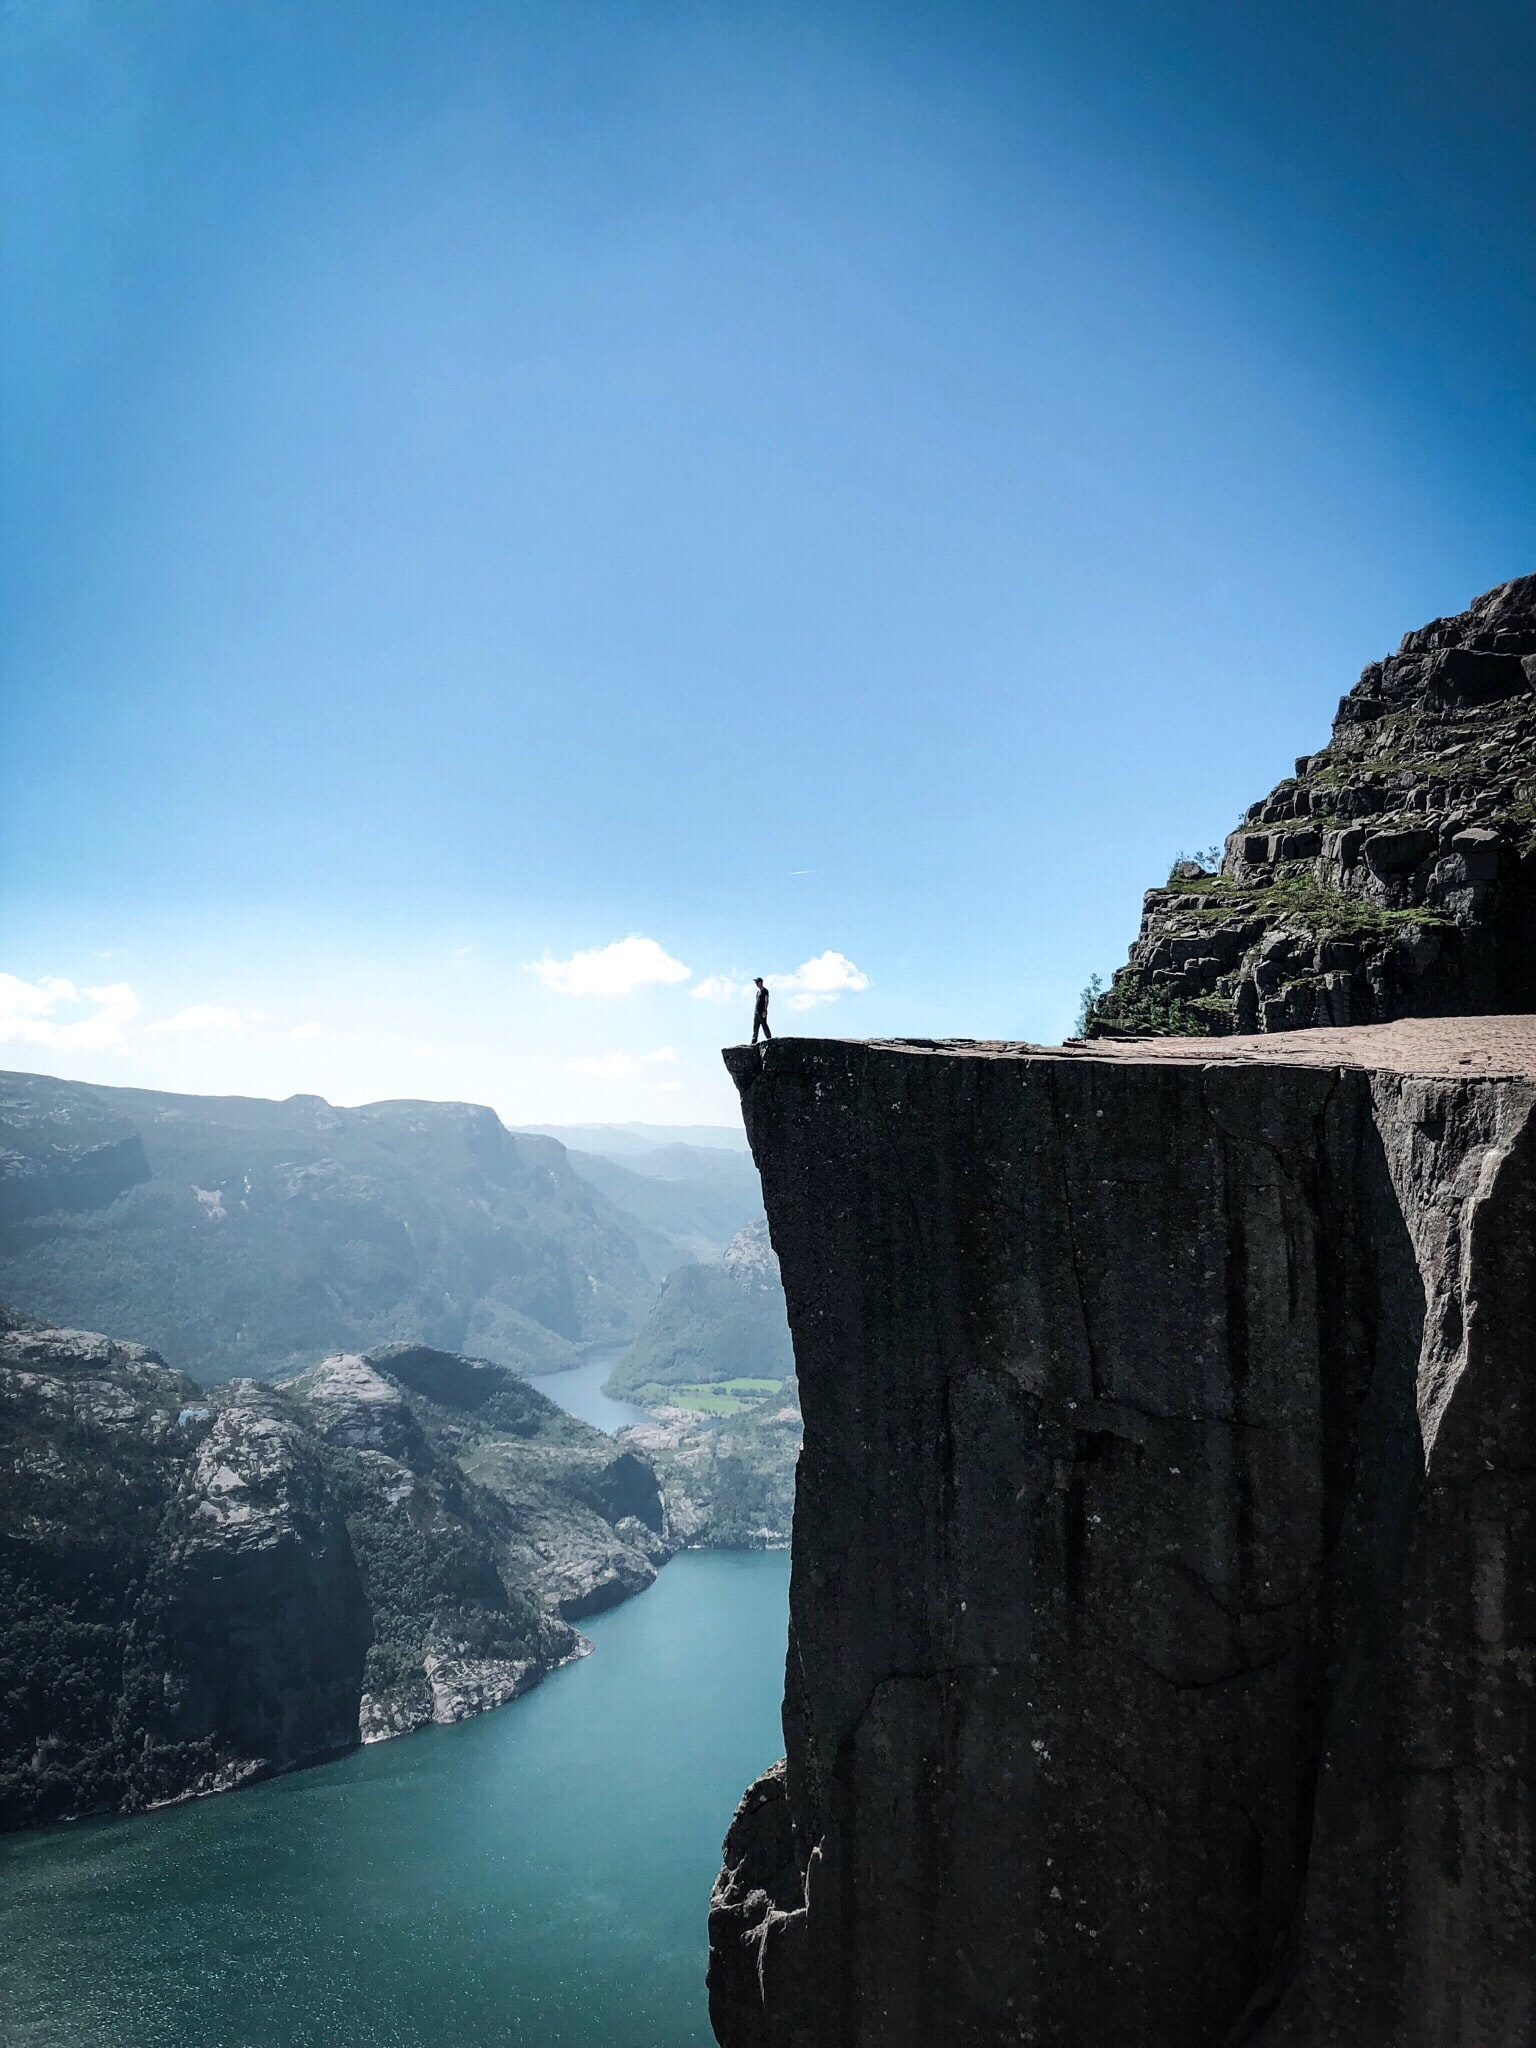 man standing on the edge of the rocky cliff looking down